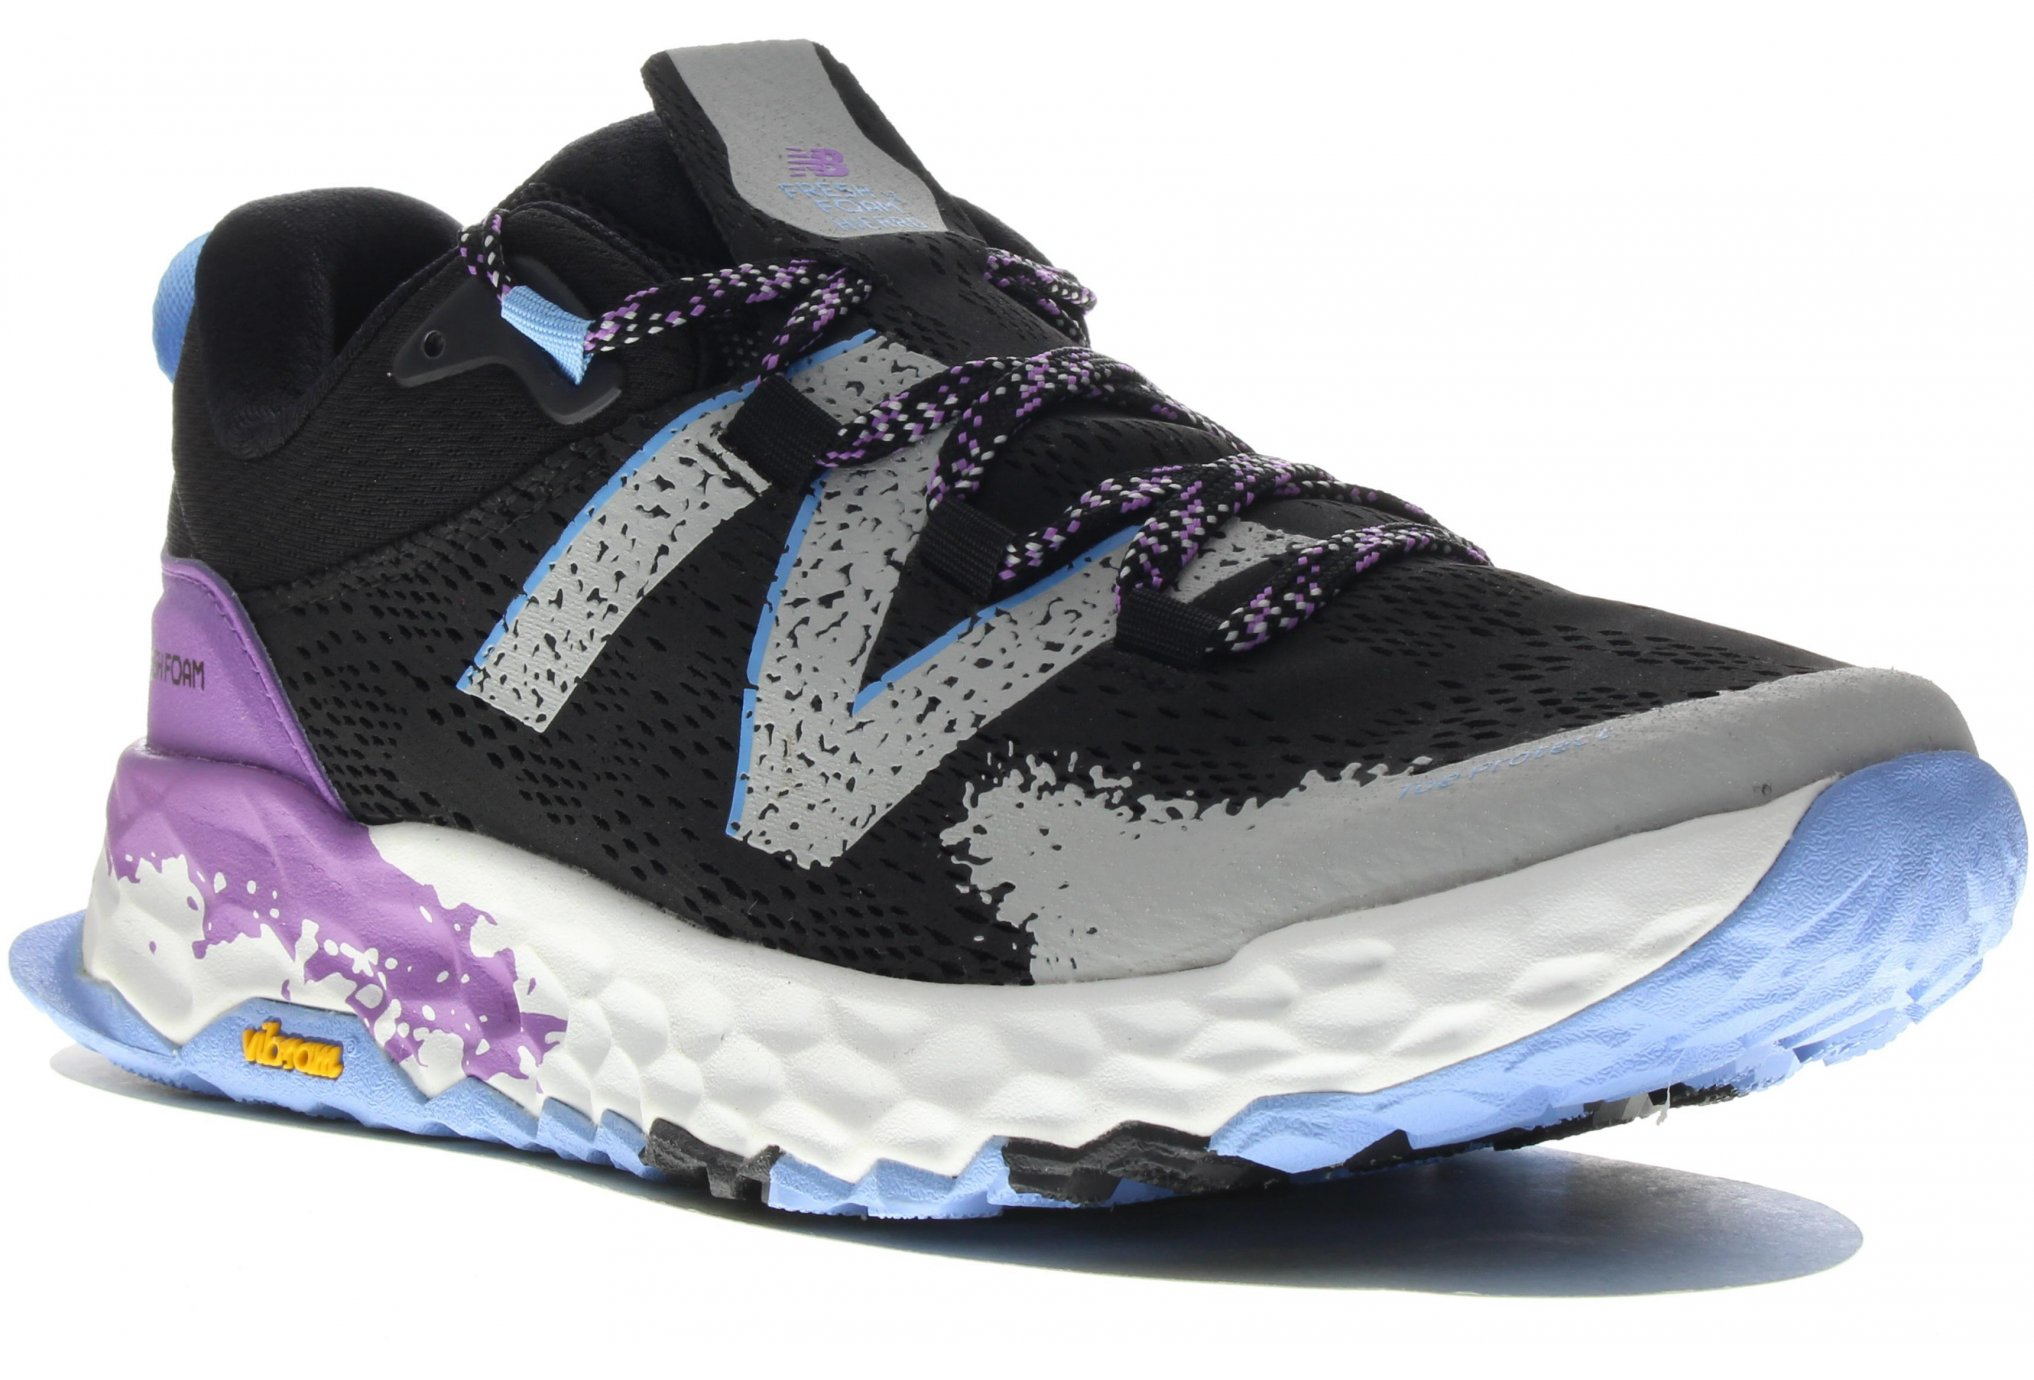 New Balance Fresh Foam Hierro V5 Chaussures running femme